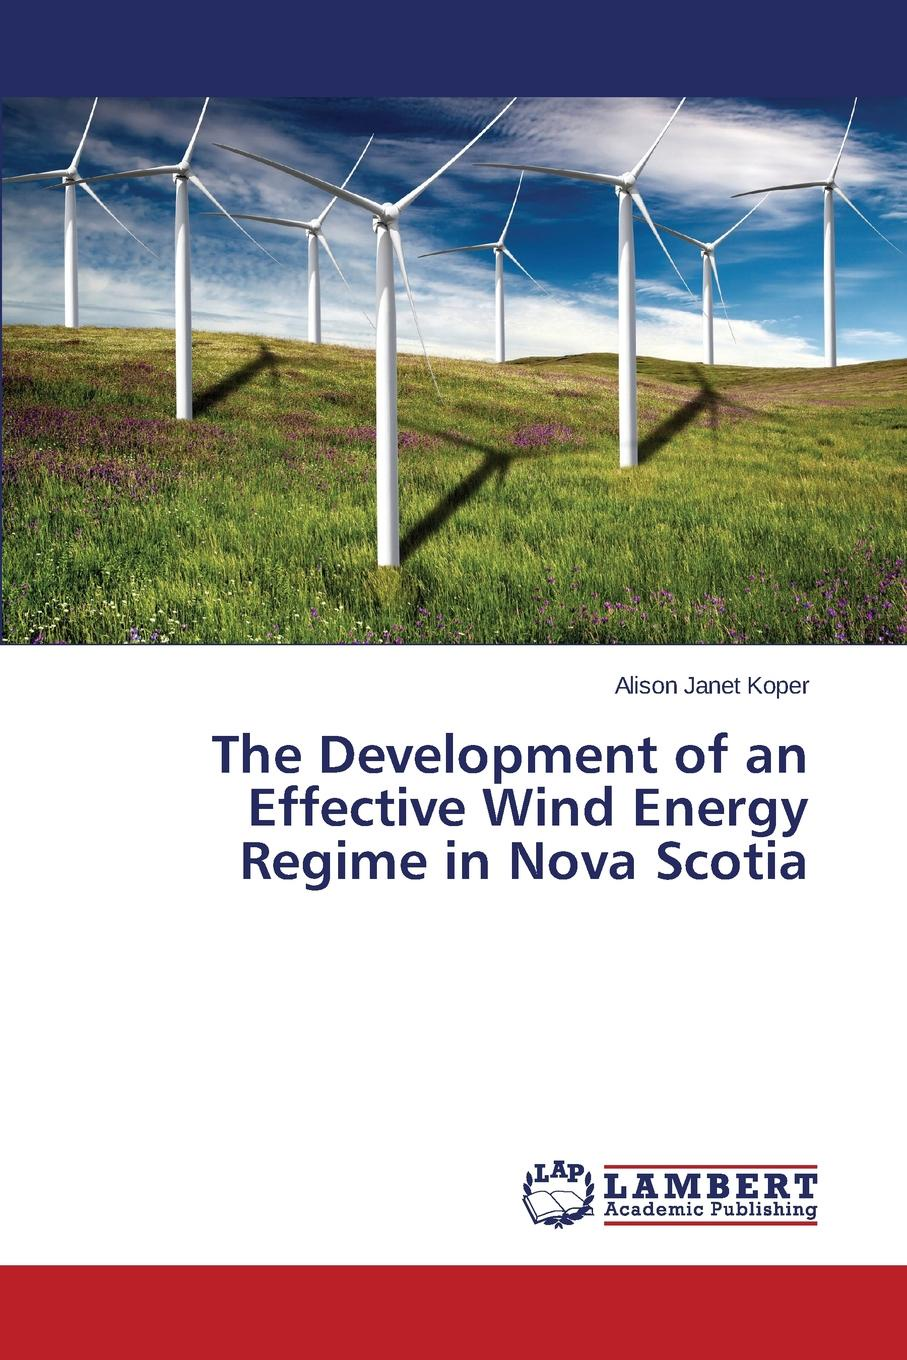 Koper Alison Janet The Development of an Effective Wind Energy Regime in Nova Scotia barriers